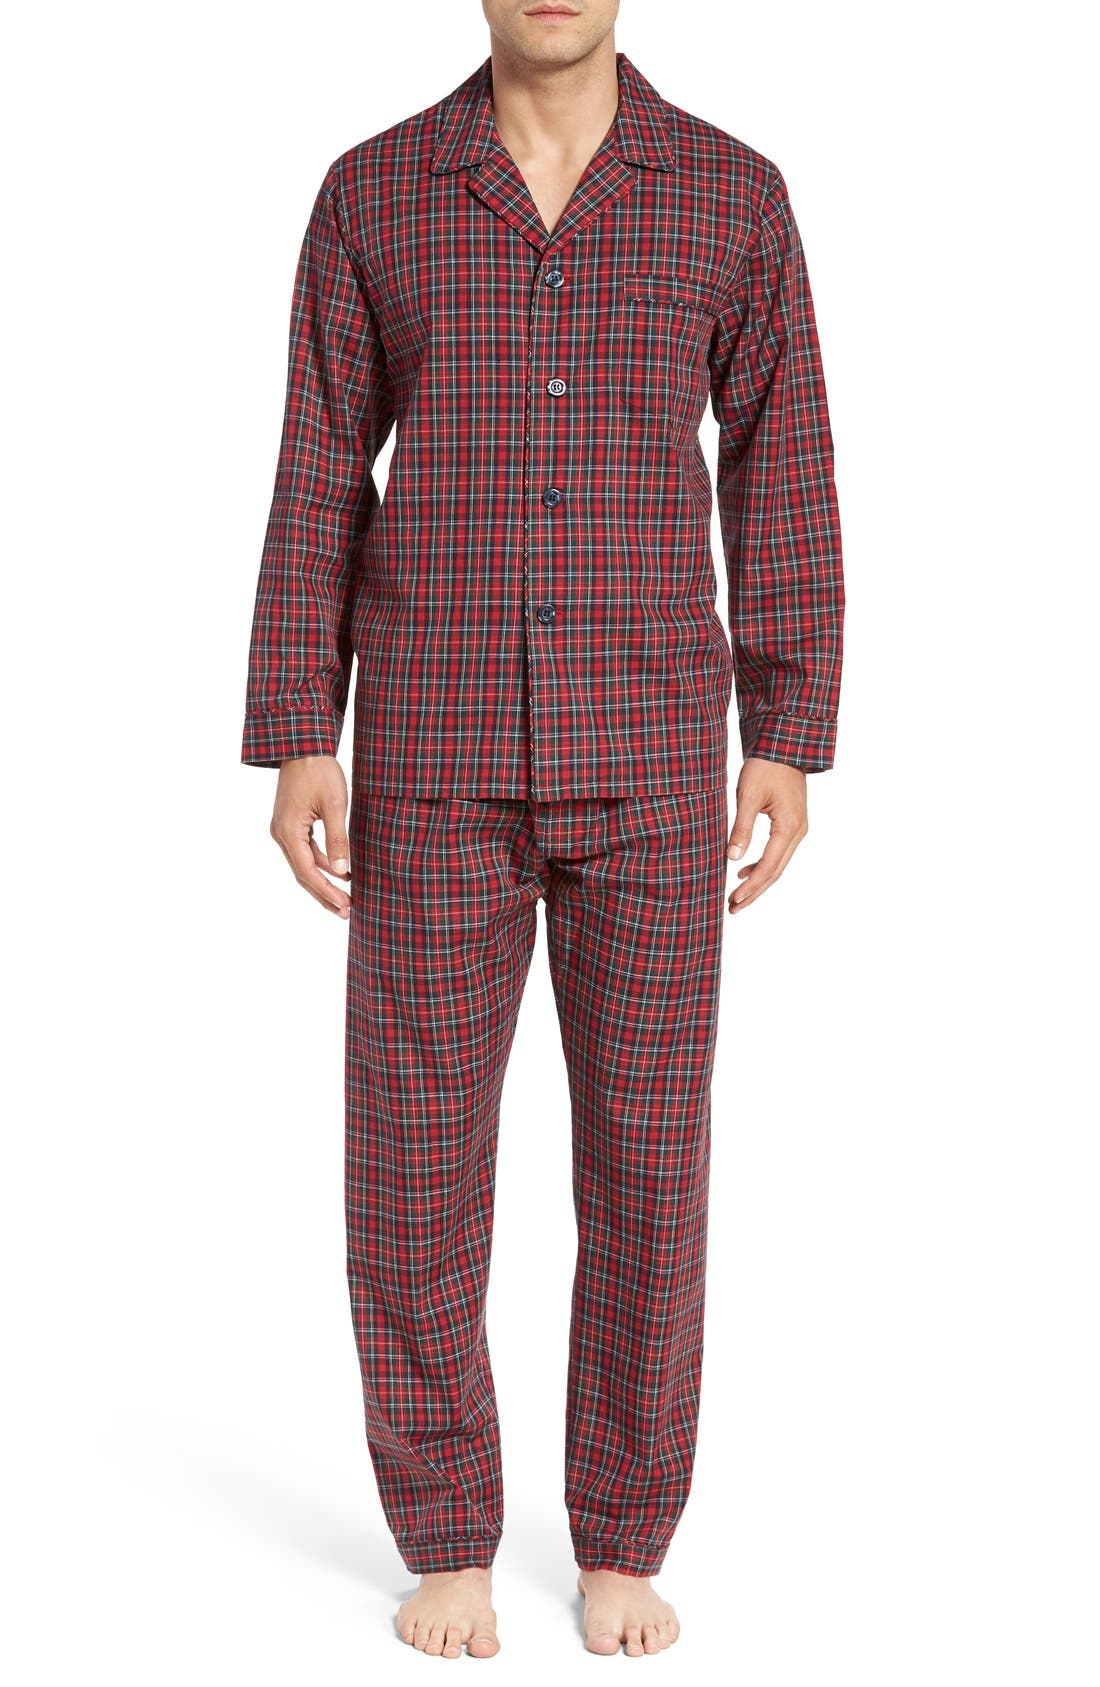 'CVC' Cotton Blend Pajamas,                         Main,                         color, Holiday Red